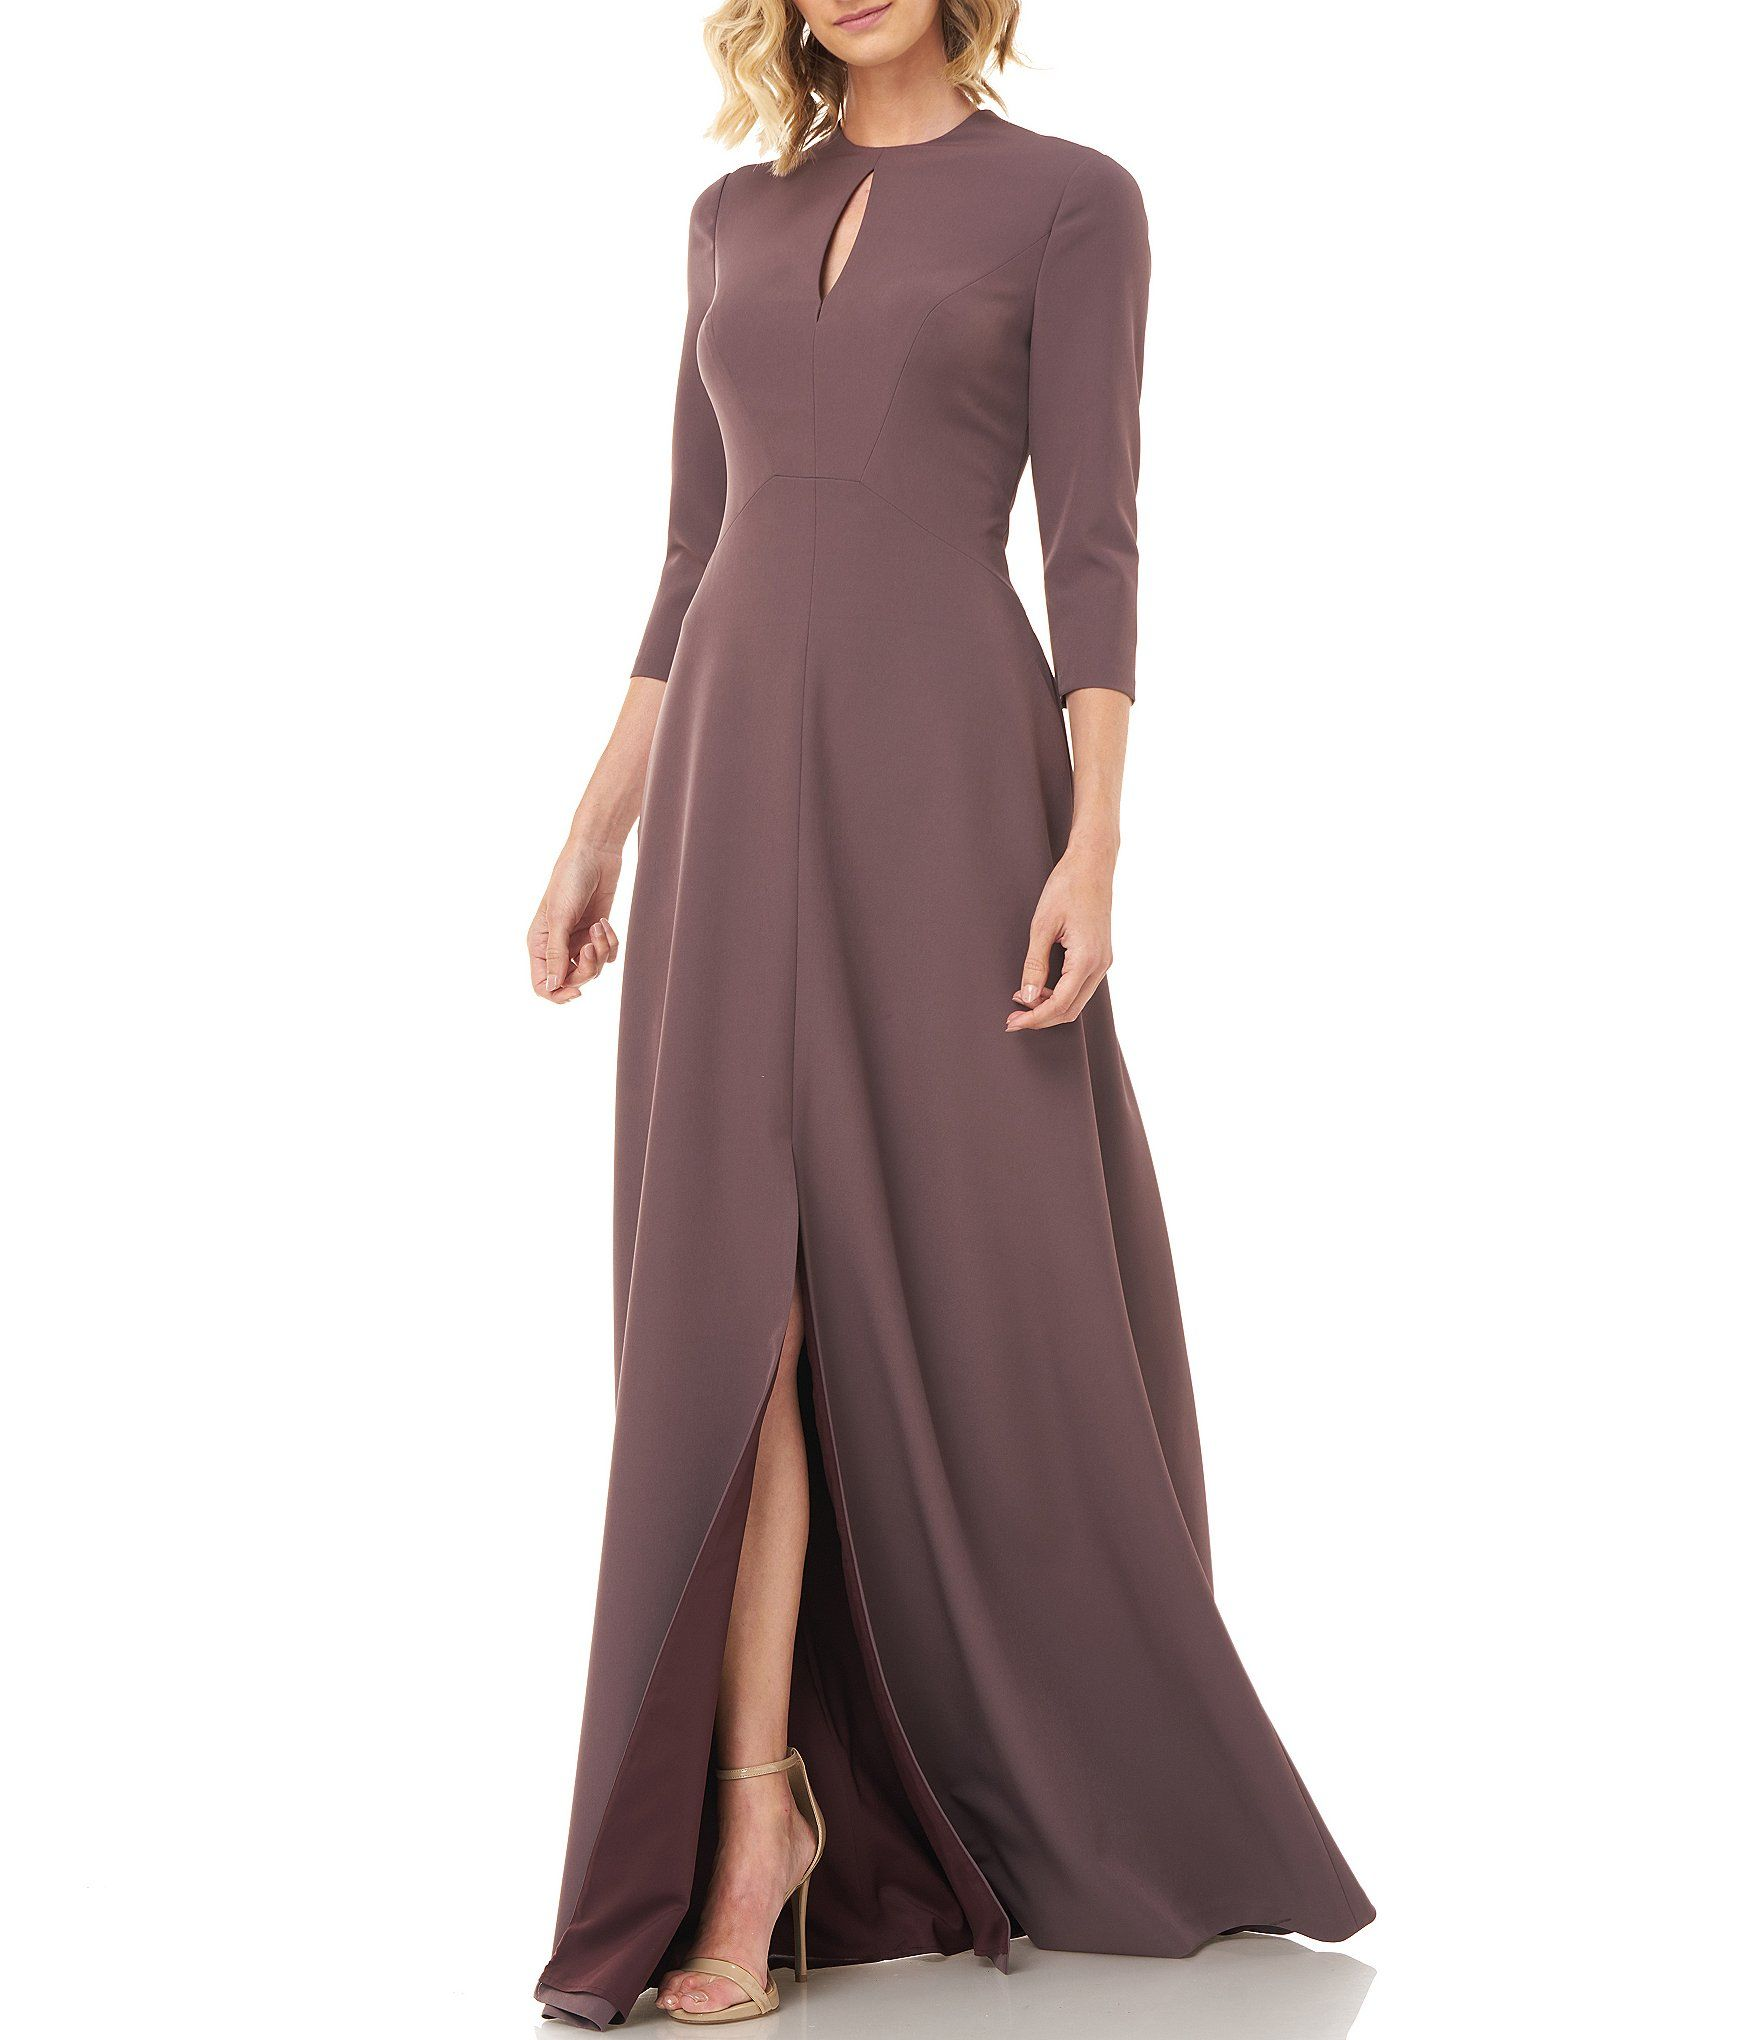 Kay Unger Hannah Keyhole Detail 3/4 Sleeve ALine Gown